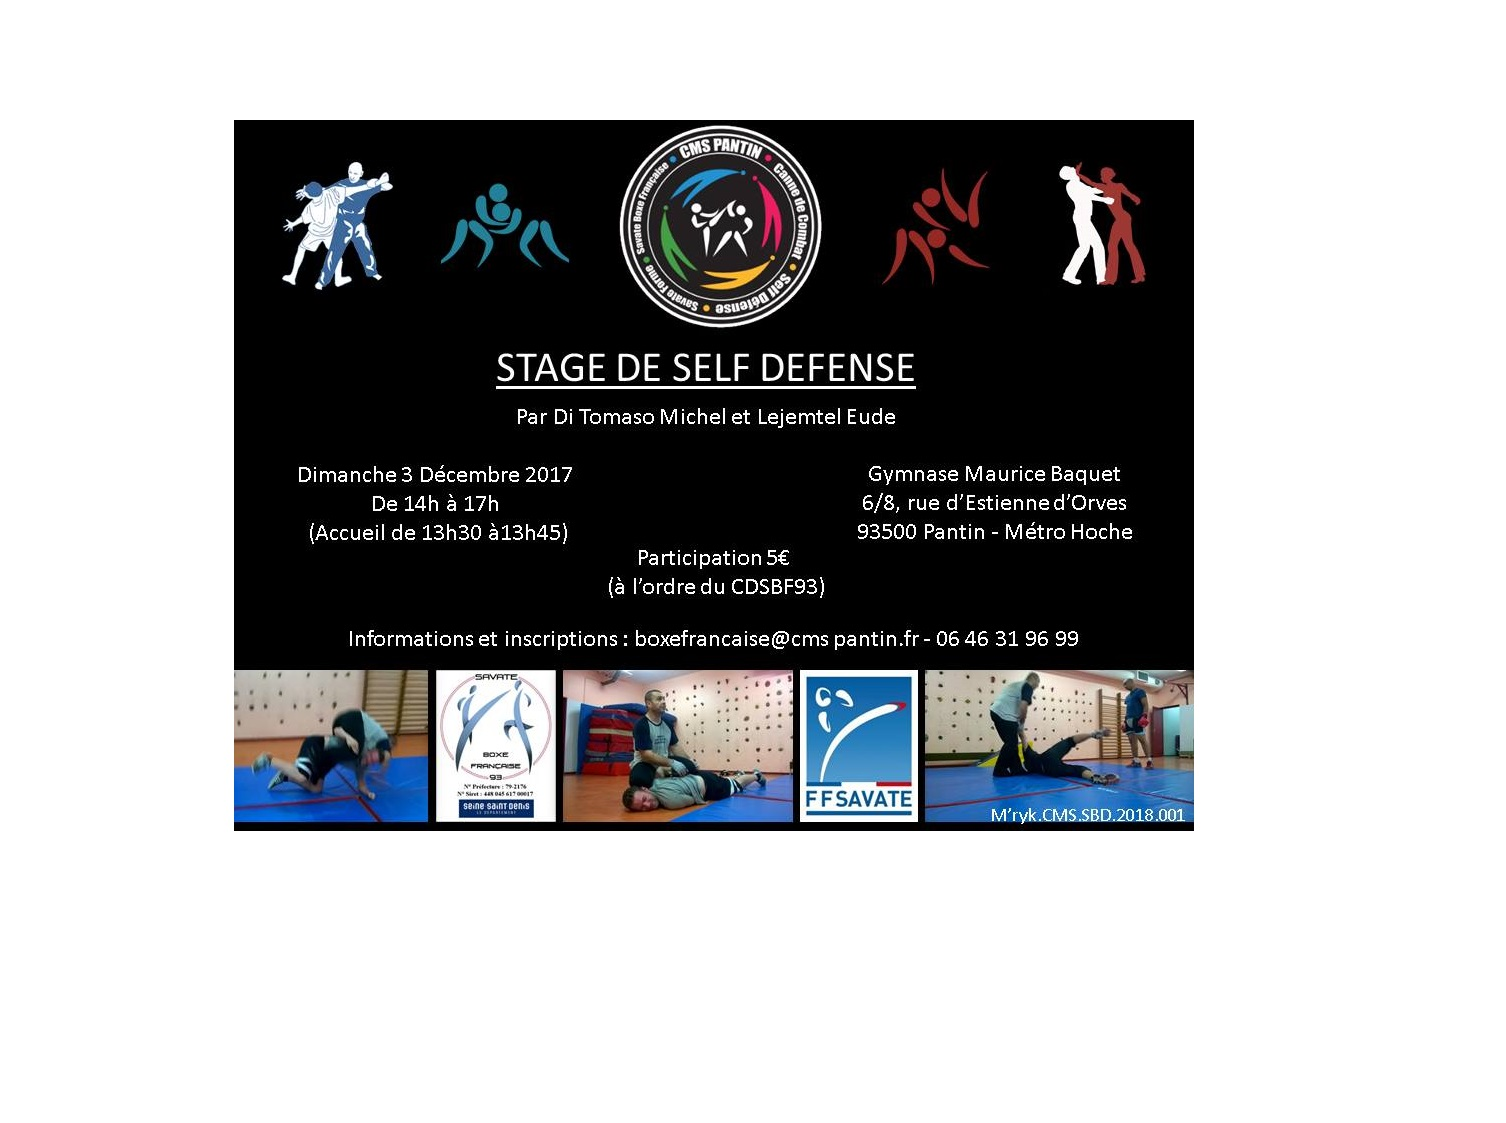 Stage de self-defense - 3 décembre 2017